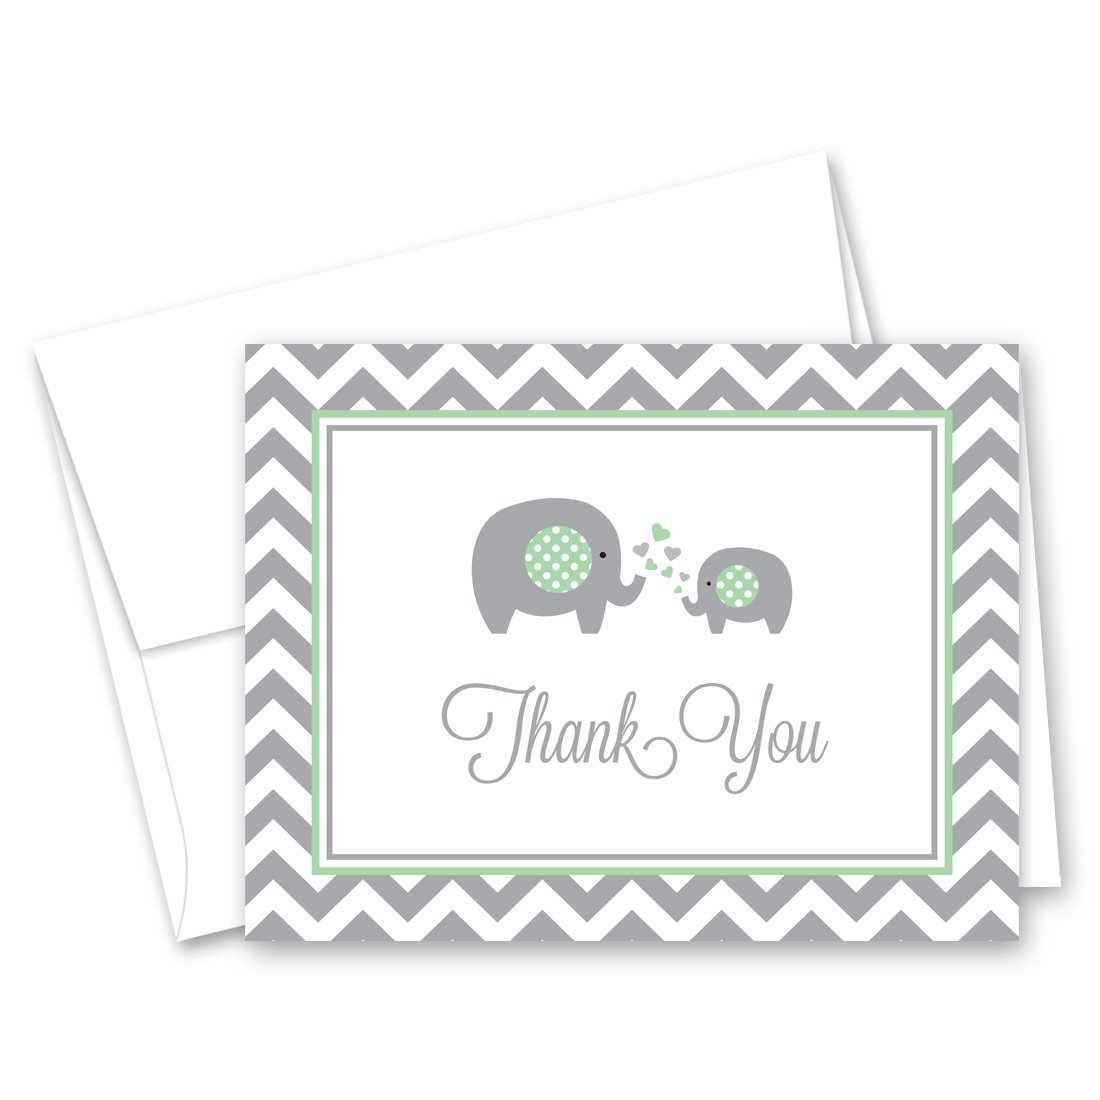 50 Cnt Chevron Mint Elephant Baby Shower Thank You Cards by MyExpression.com (Image #1)